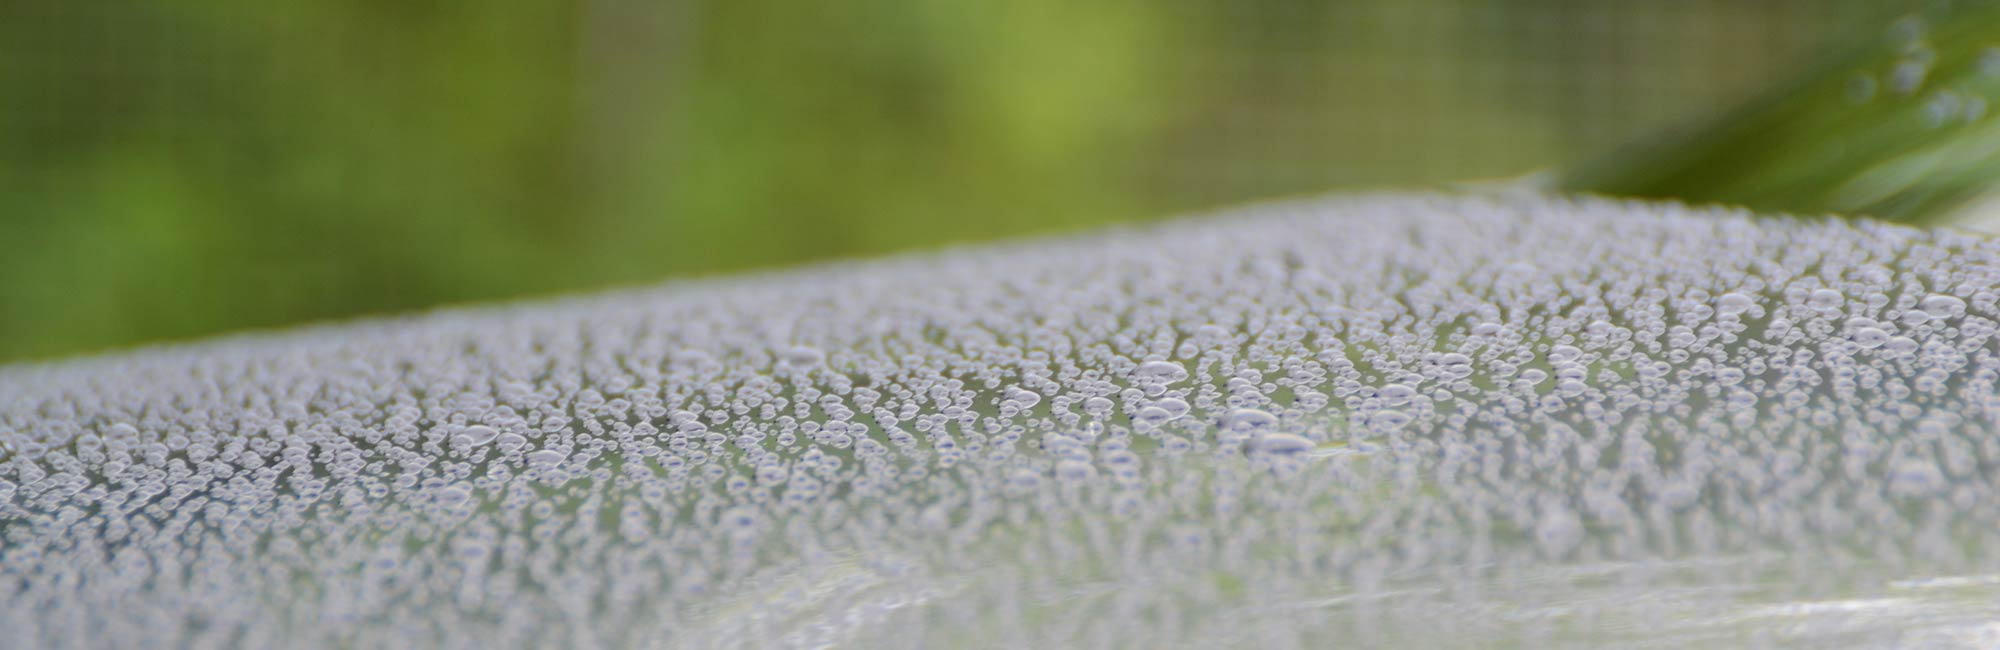 Hydrocoat - A layer of super hydrophobic protection